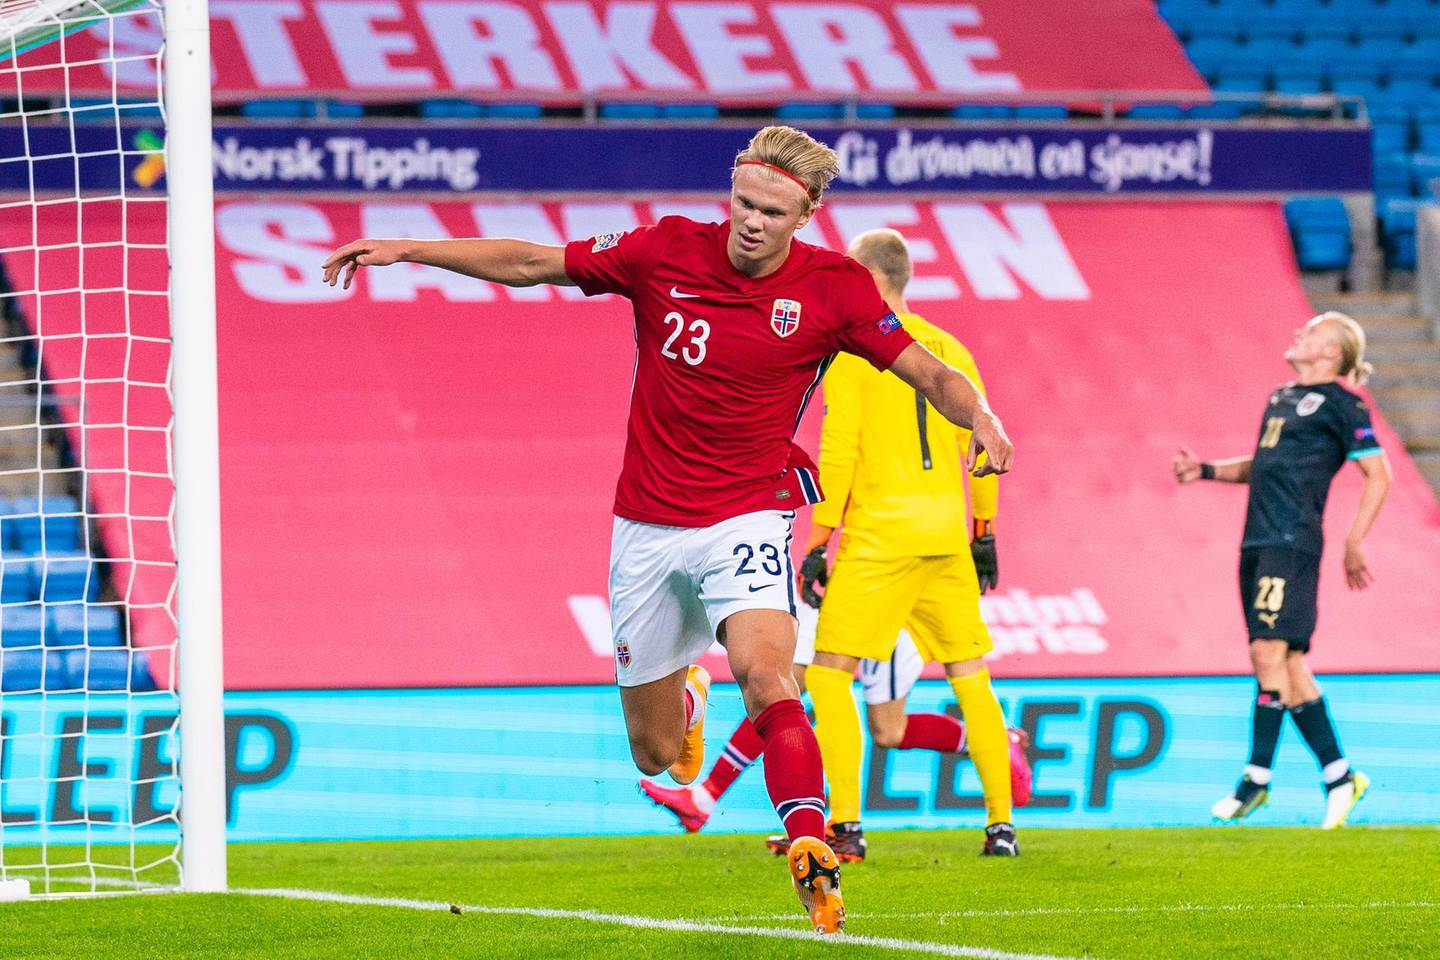 epa08648089 Norway's Erling Braut Haaland celebrates after scoring the 1-2 goal during the UEFA Nations League soccer match between Norway and Austria at Ullevaal Stadium in Oslo, Nprway, 04 September 2020 (issued 05 September 2020).  EPA/STIAN LYSBERG SOLUM  NORWAY OUT